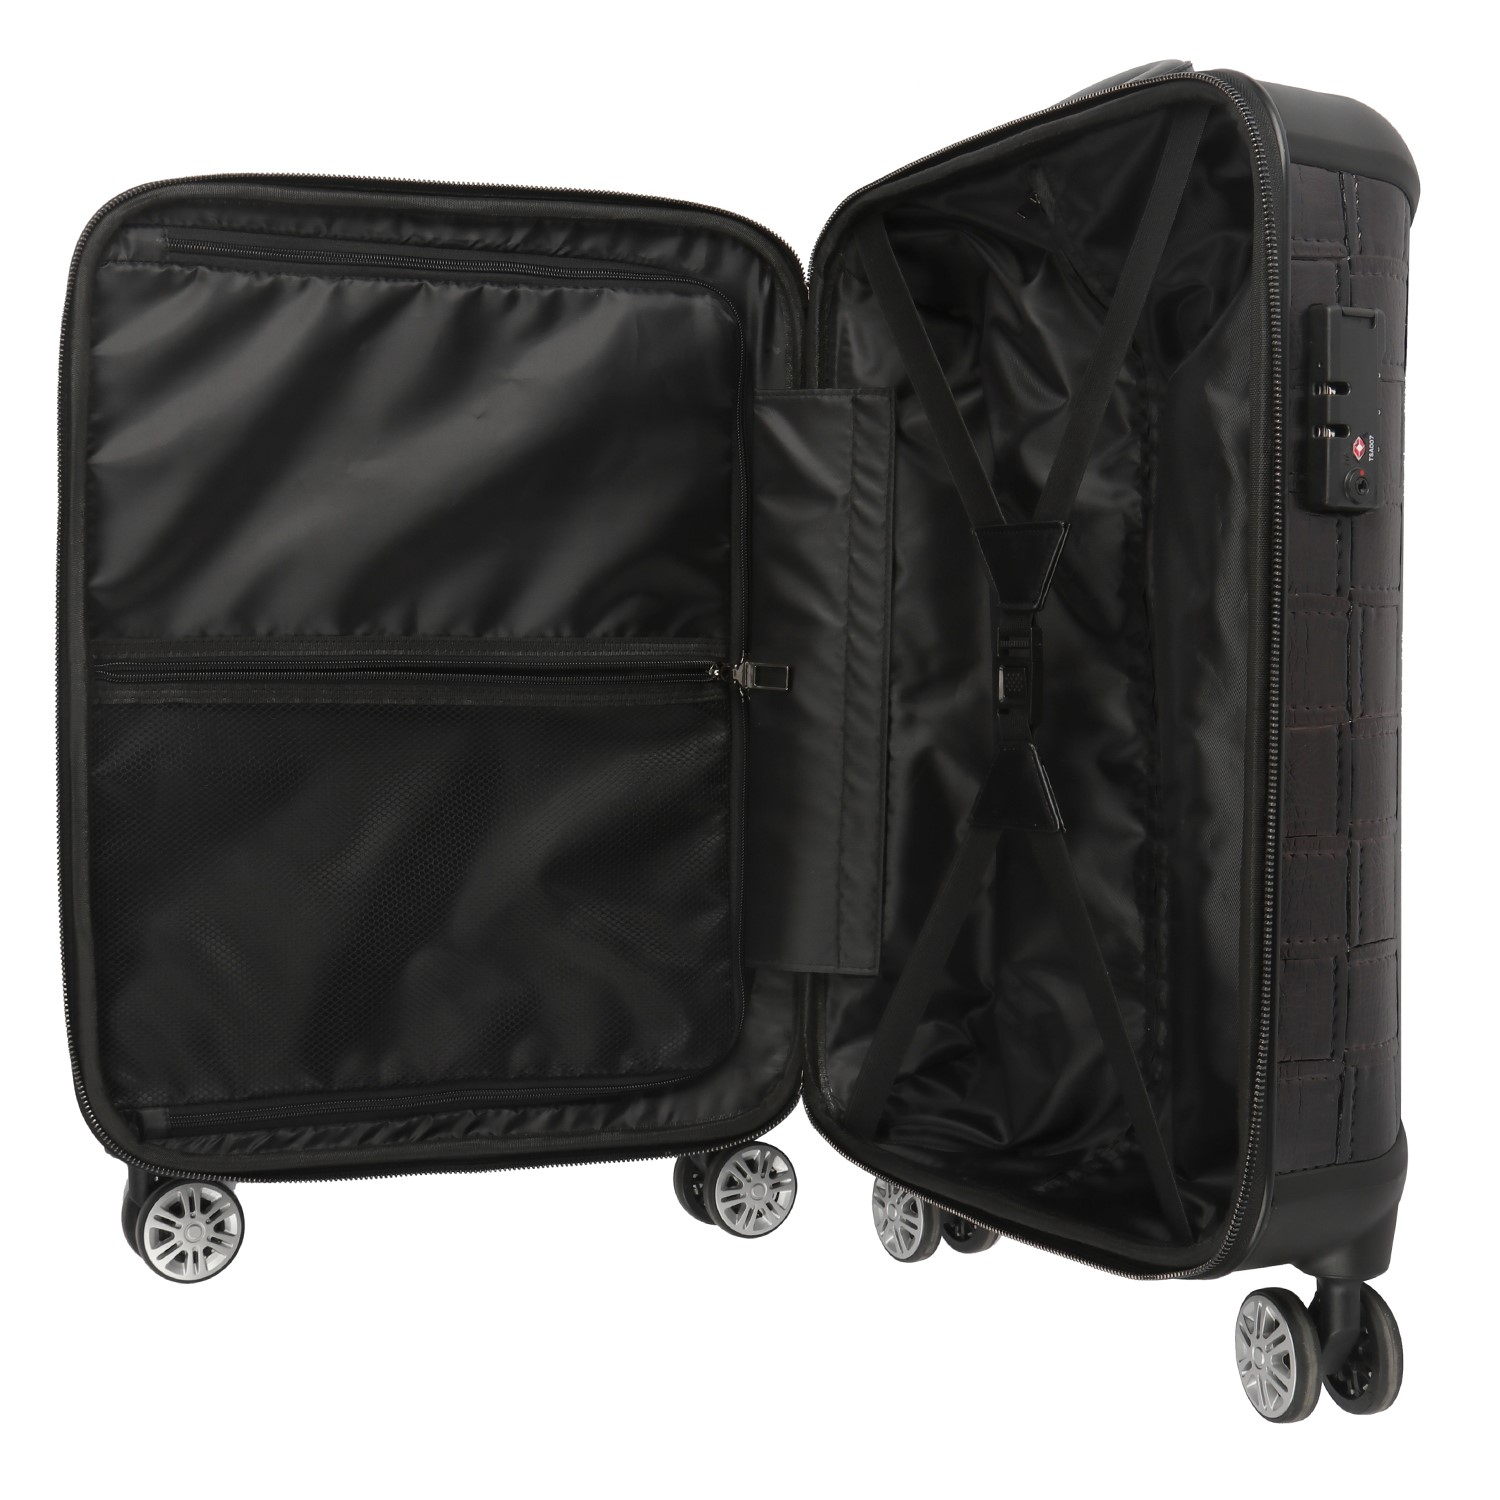 2020 New arrival black PU leather men carry on luggage suitcase